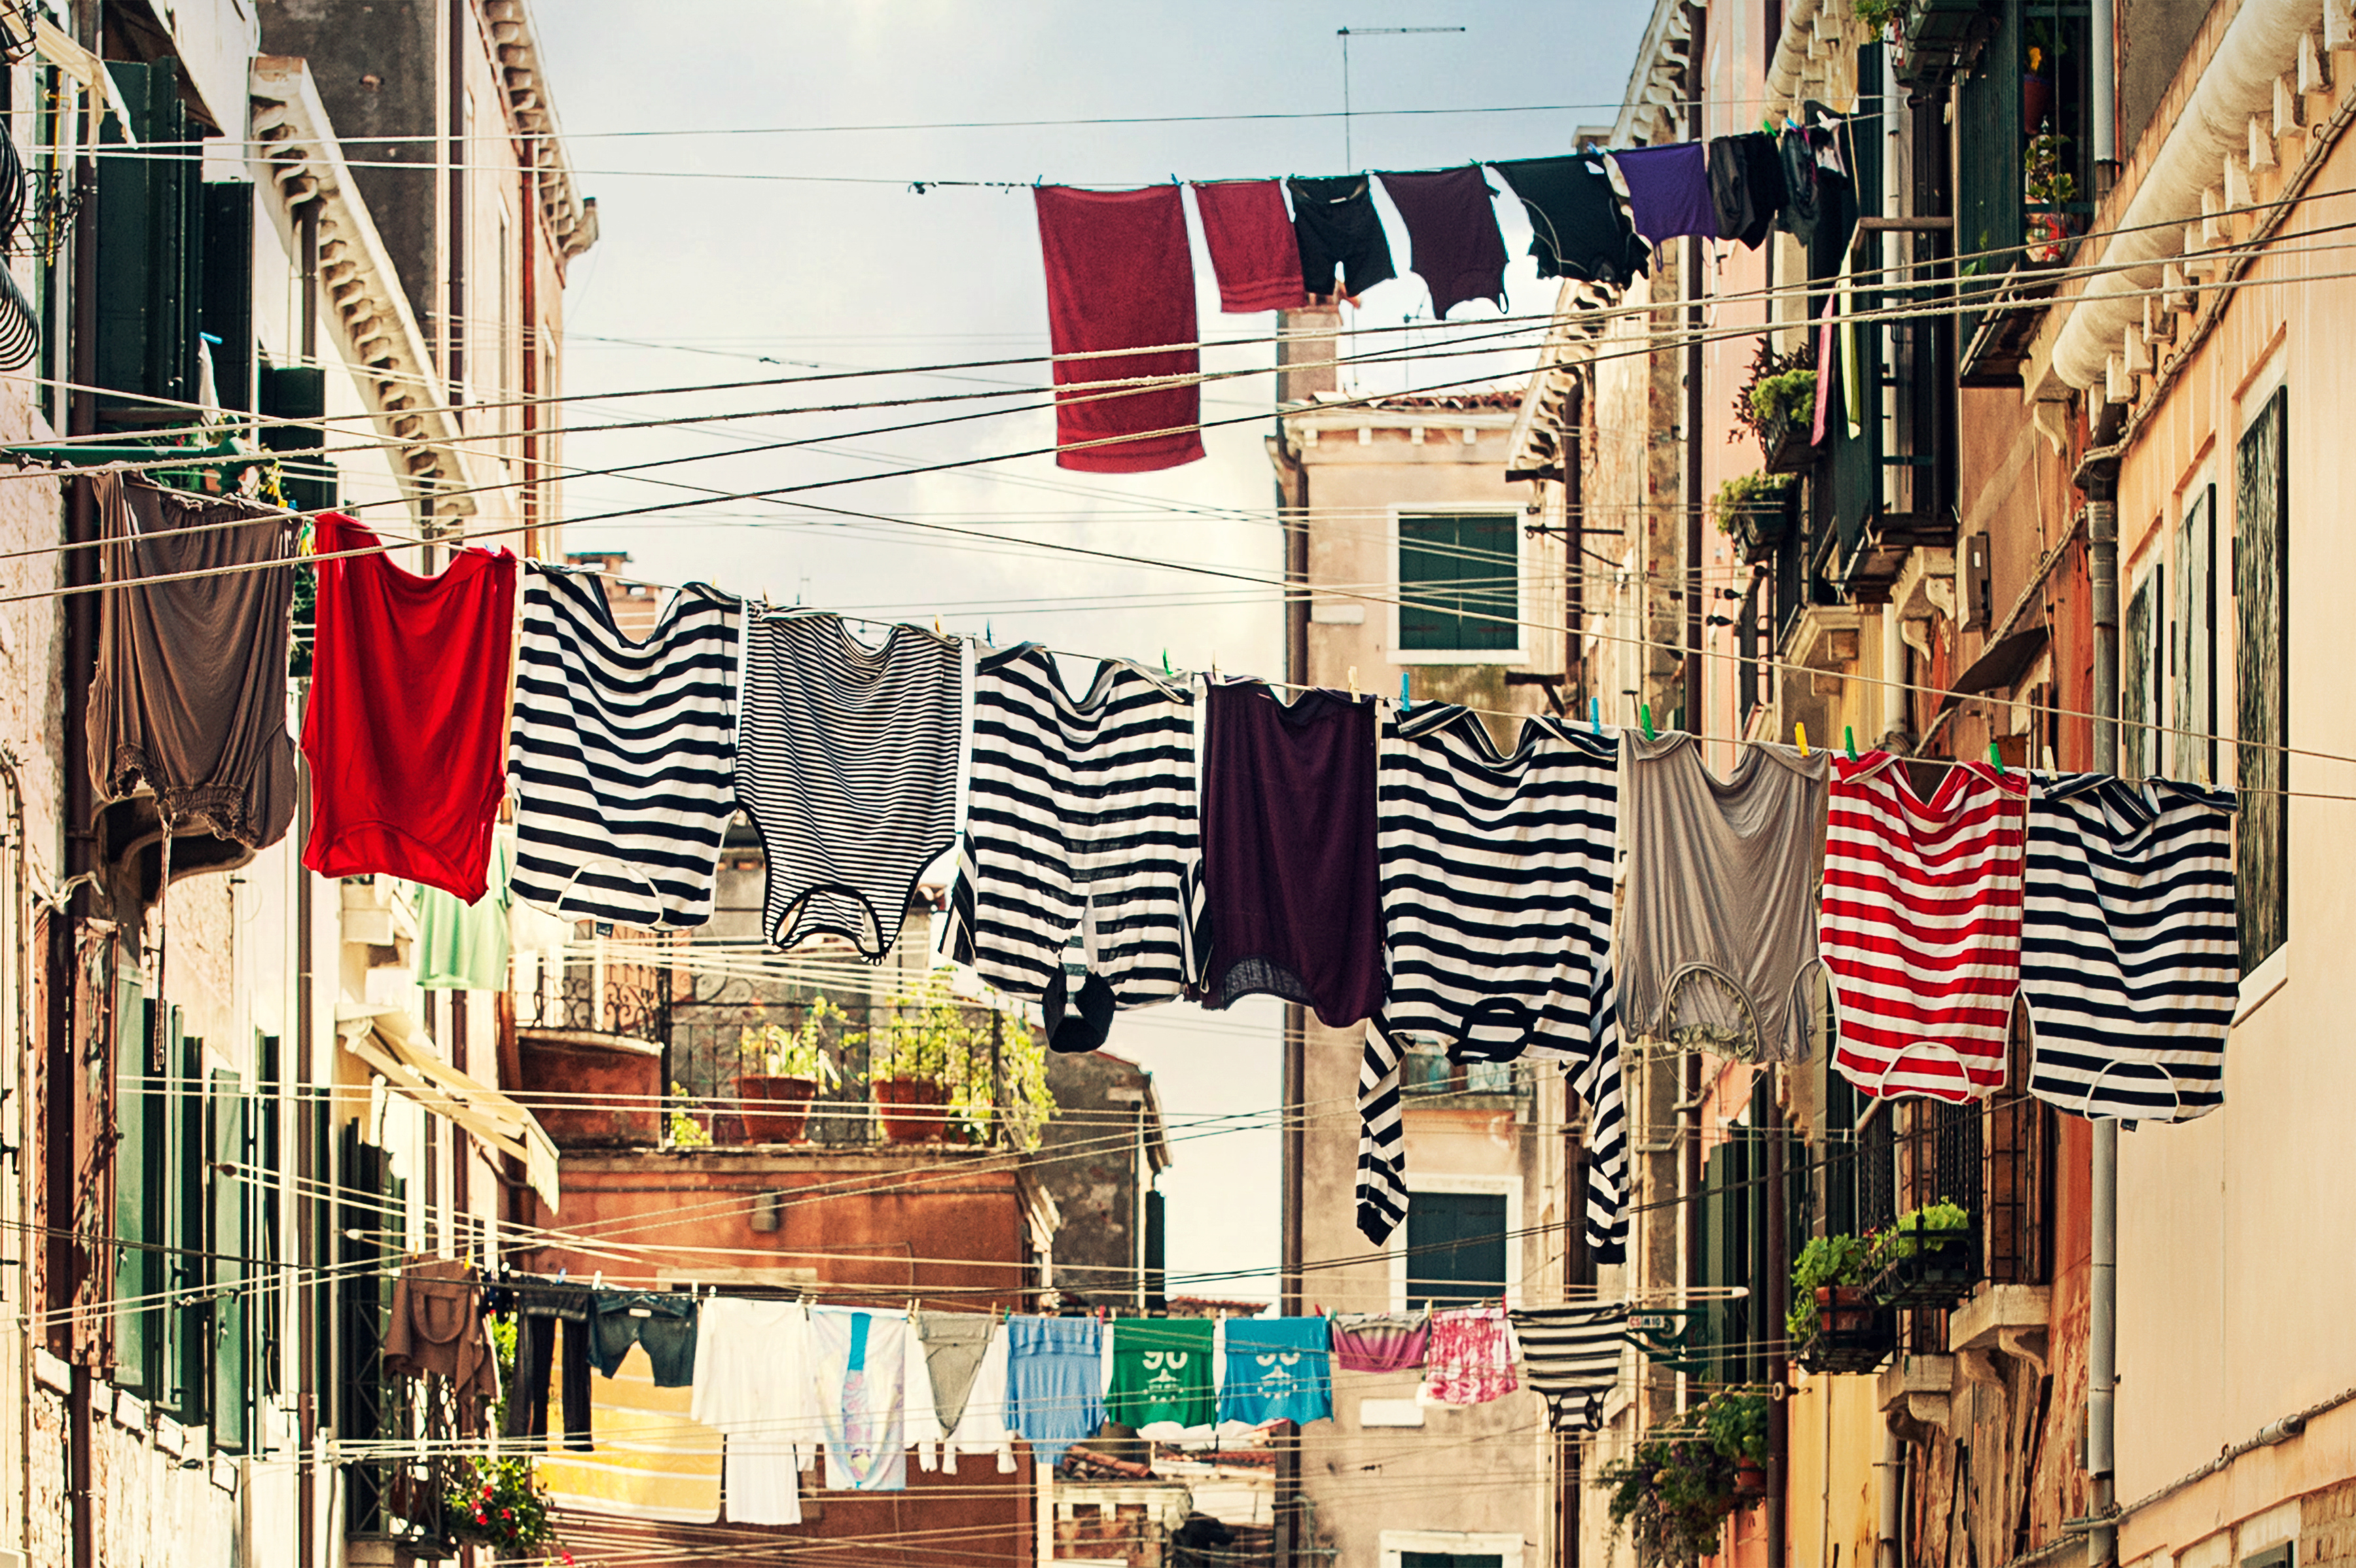 striped shirt hanging on gray wire between beige painted wall free download